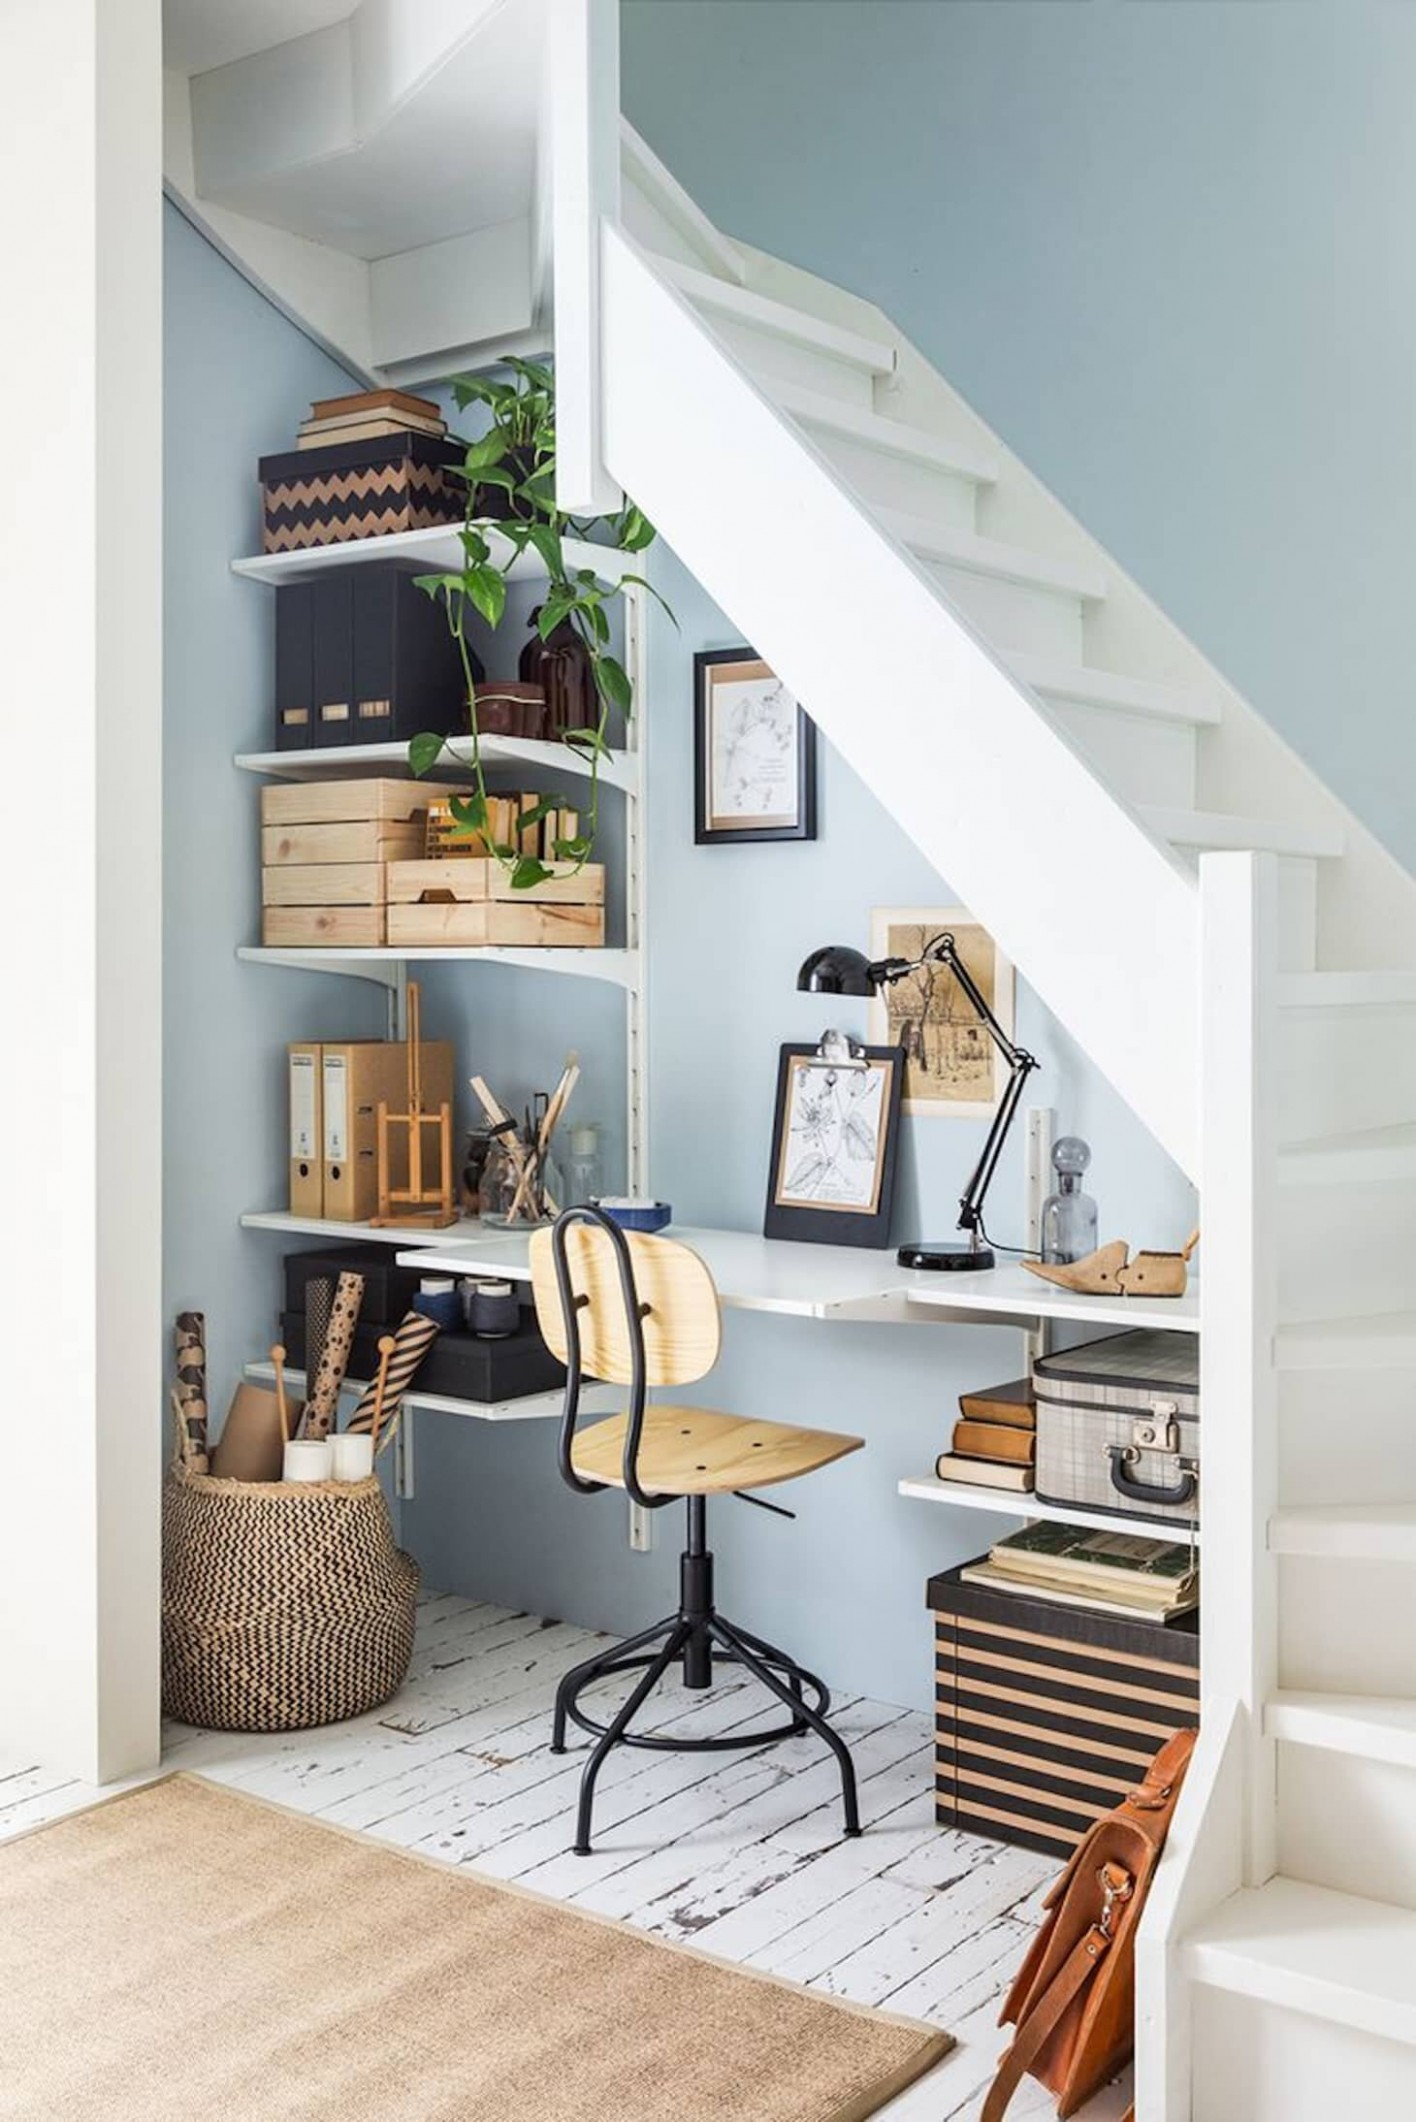 11+ Inspiring Small Home Office Ideas — THE NORDROOM - Home Office Ideas Small Room